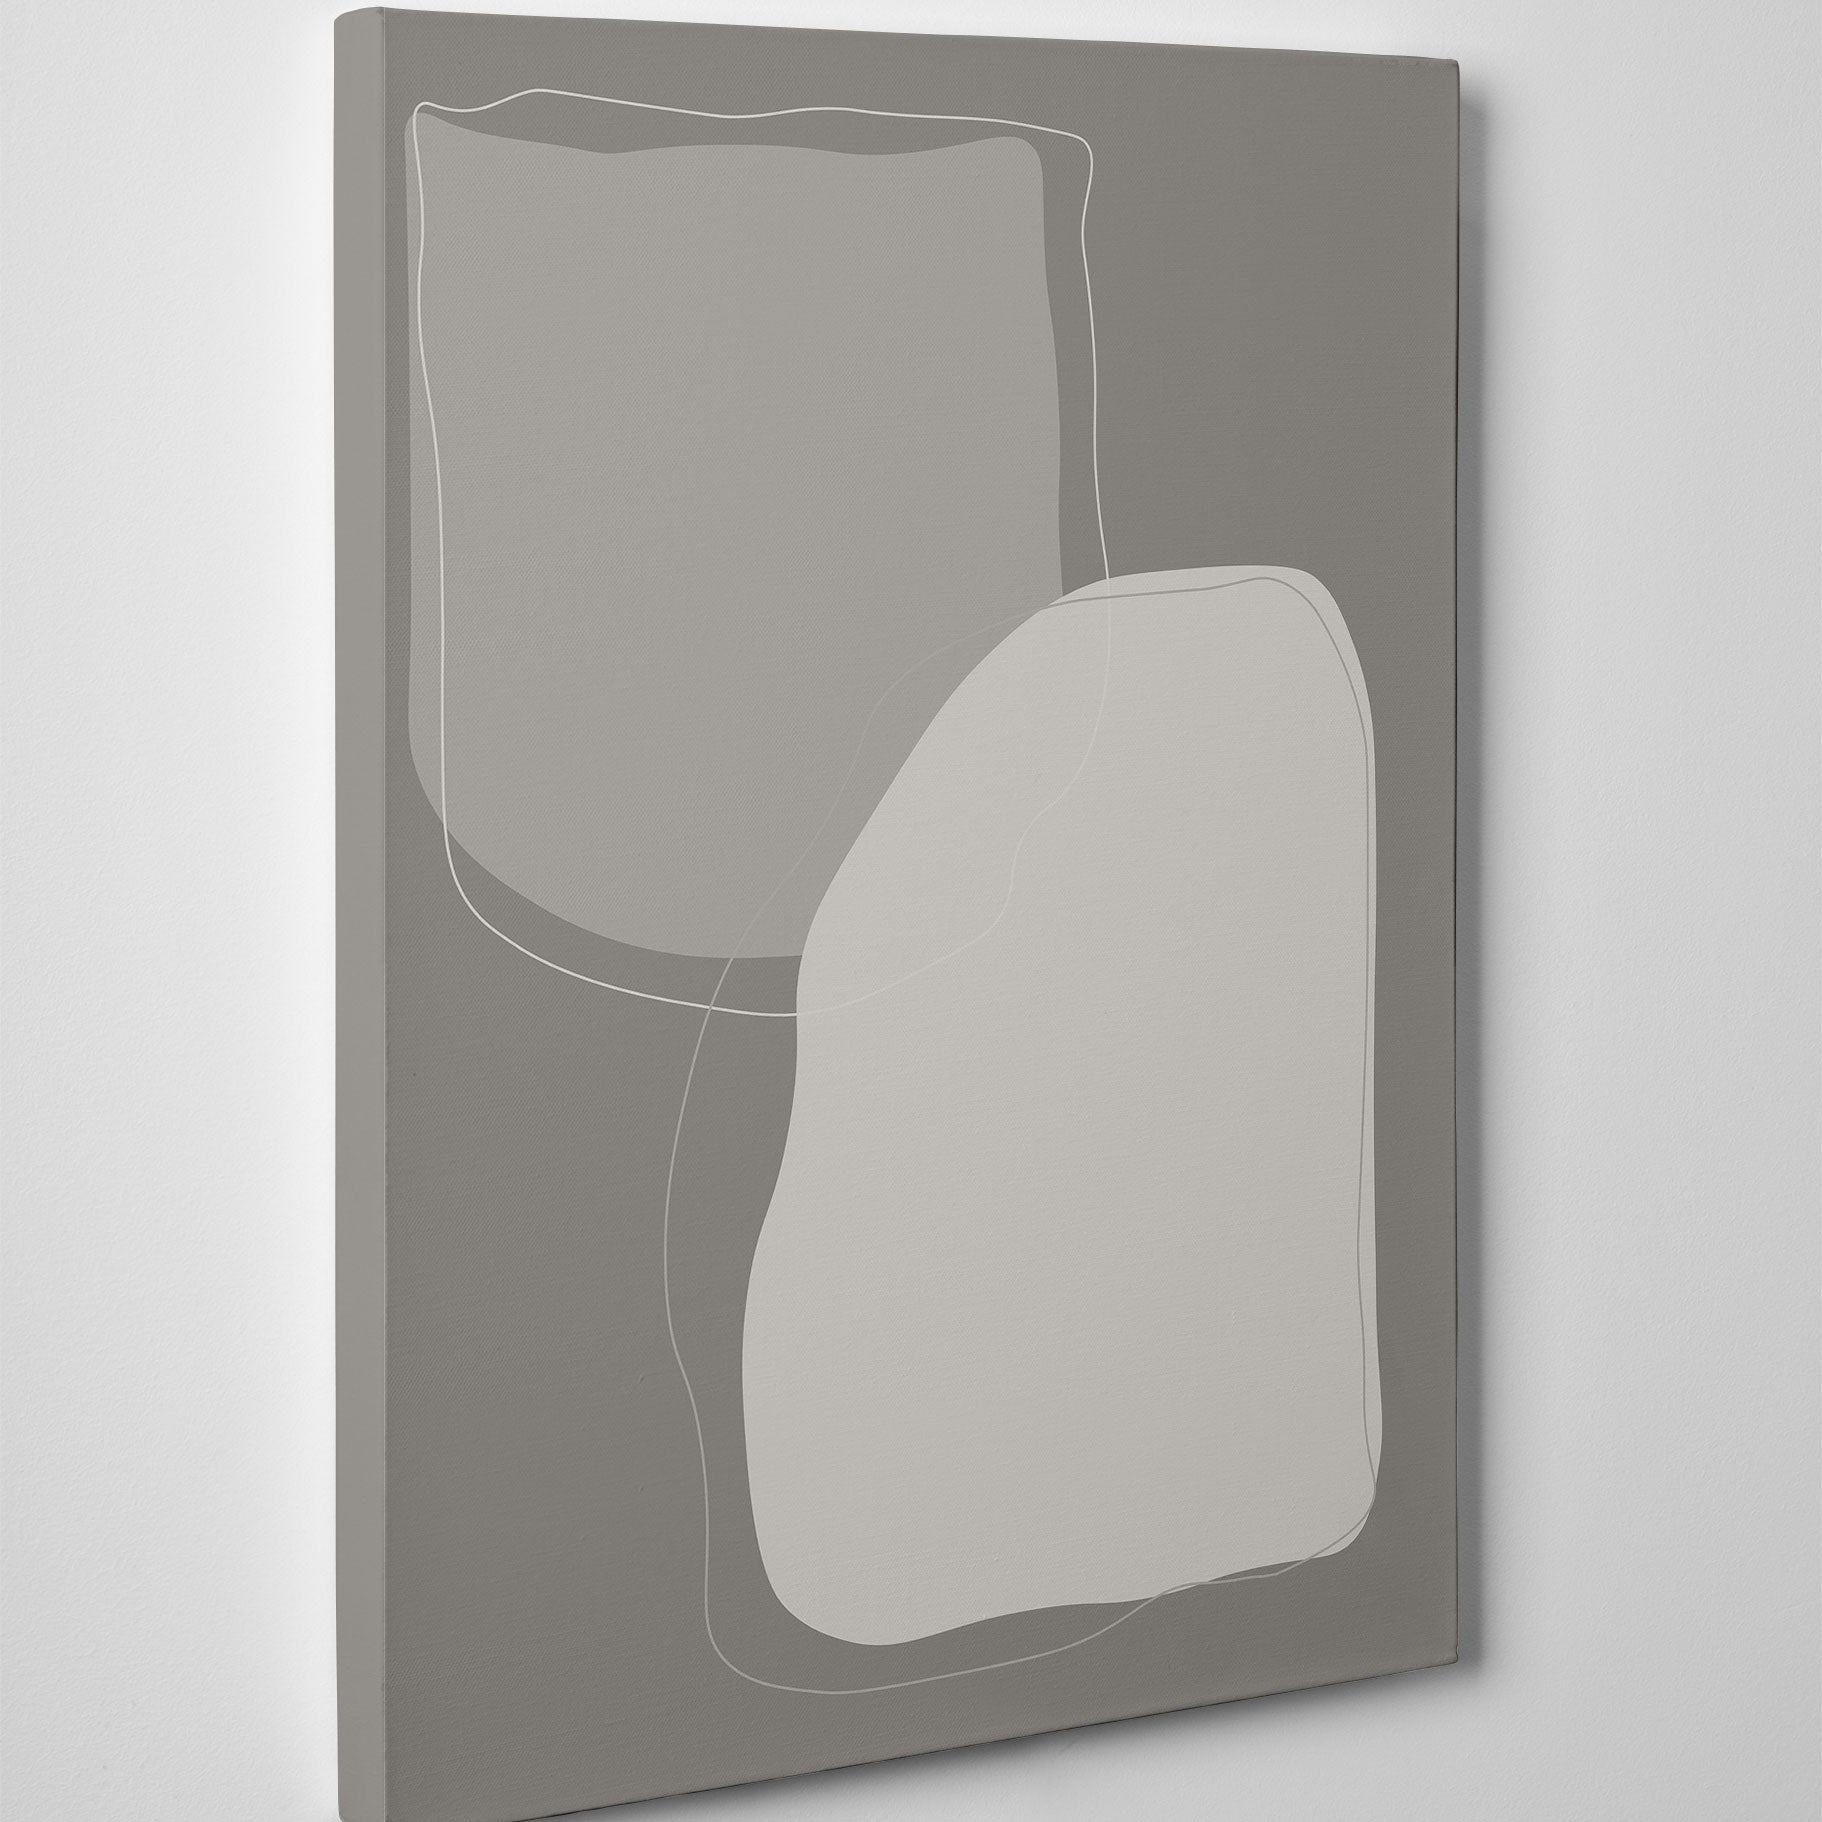 Abstract canvas print with grey shapes and background - side view